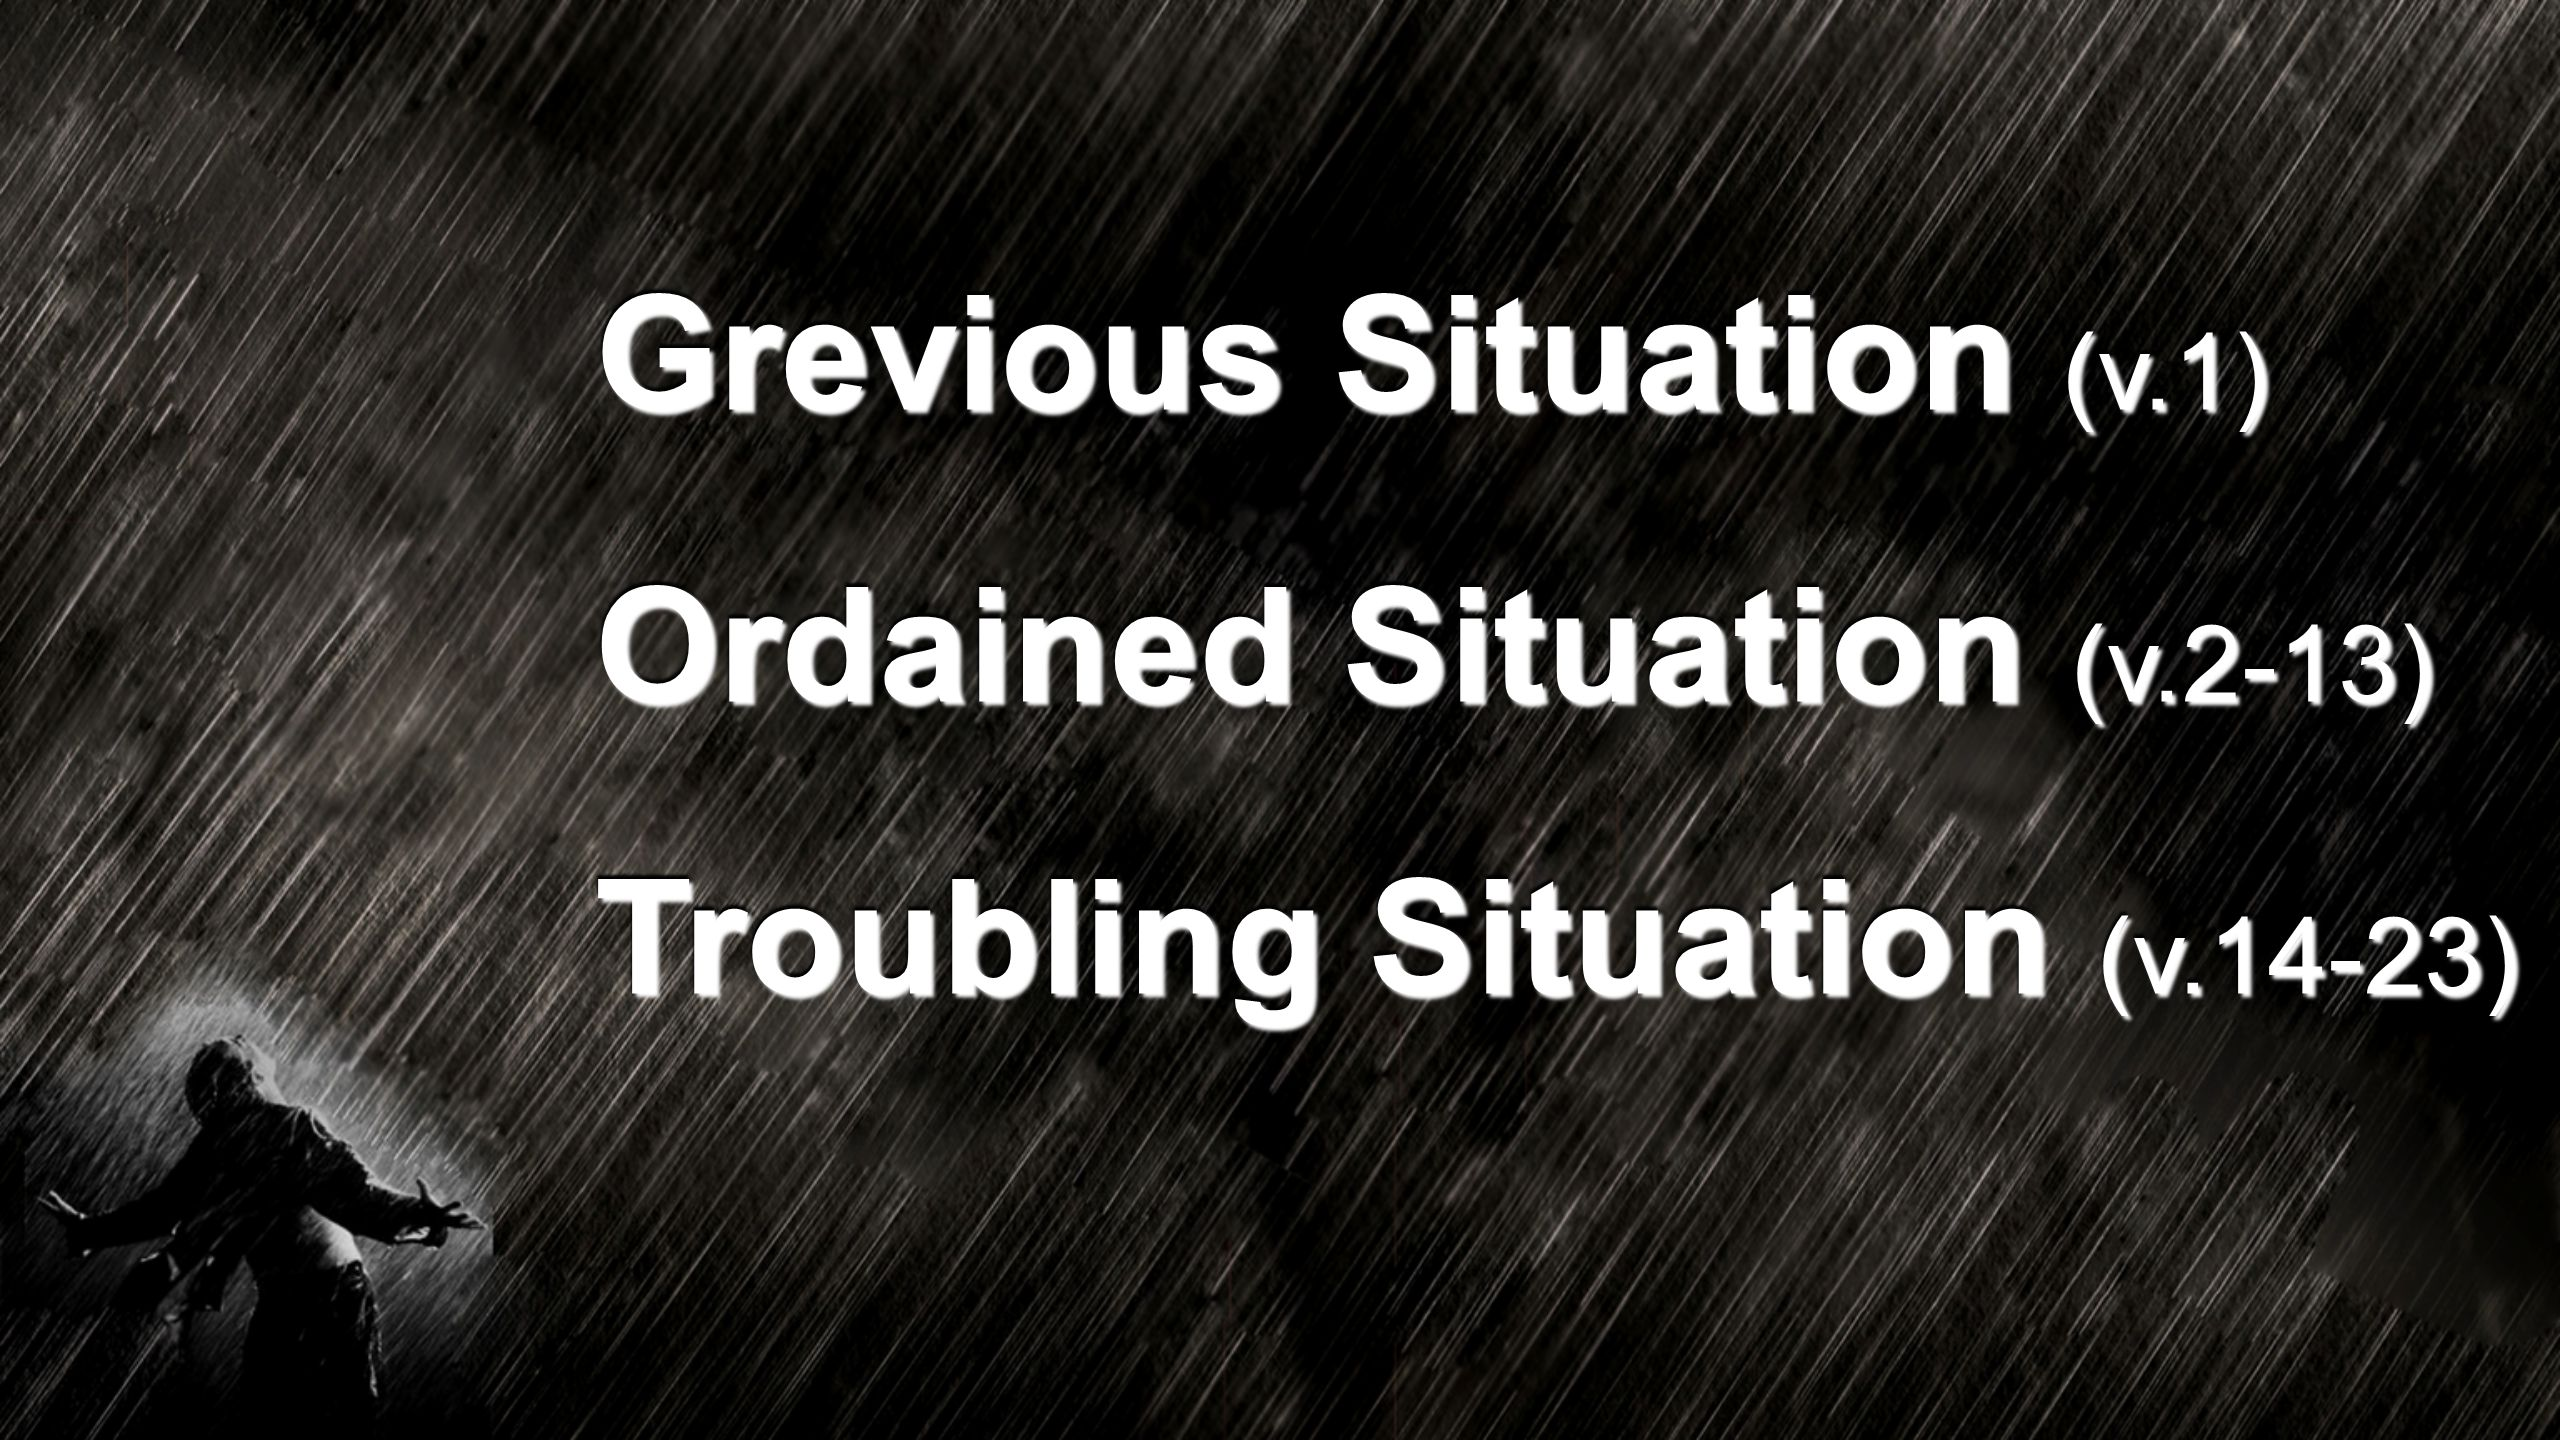 Grevious Situation (v.1) Ordained Situation (v.2-13) Troubling Situation (v.14-23)